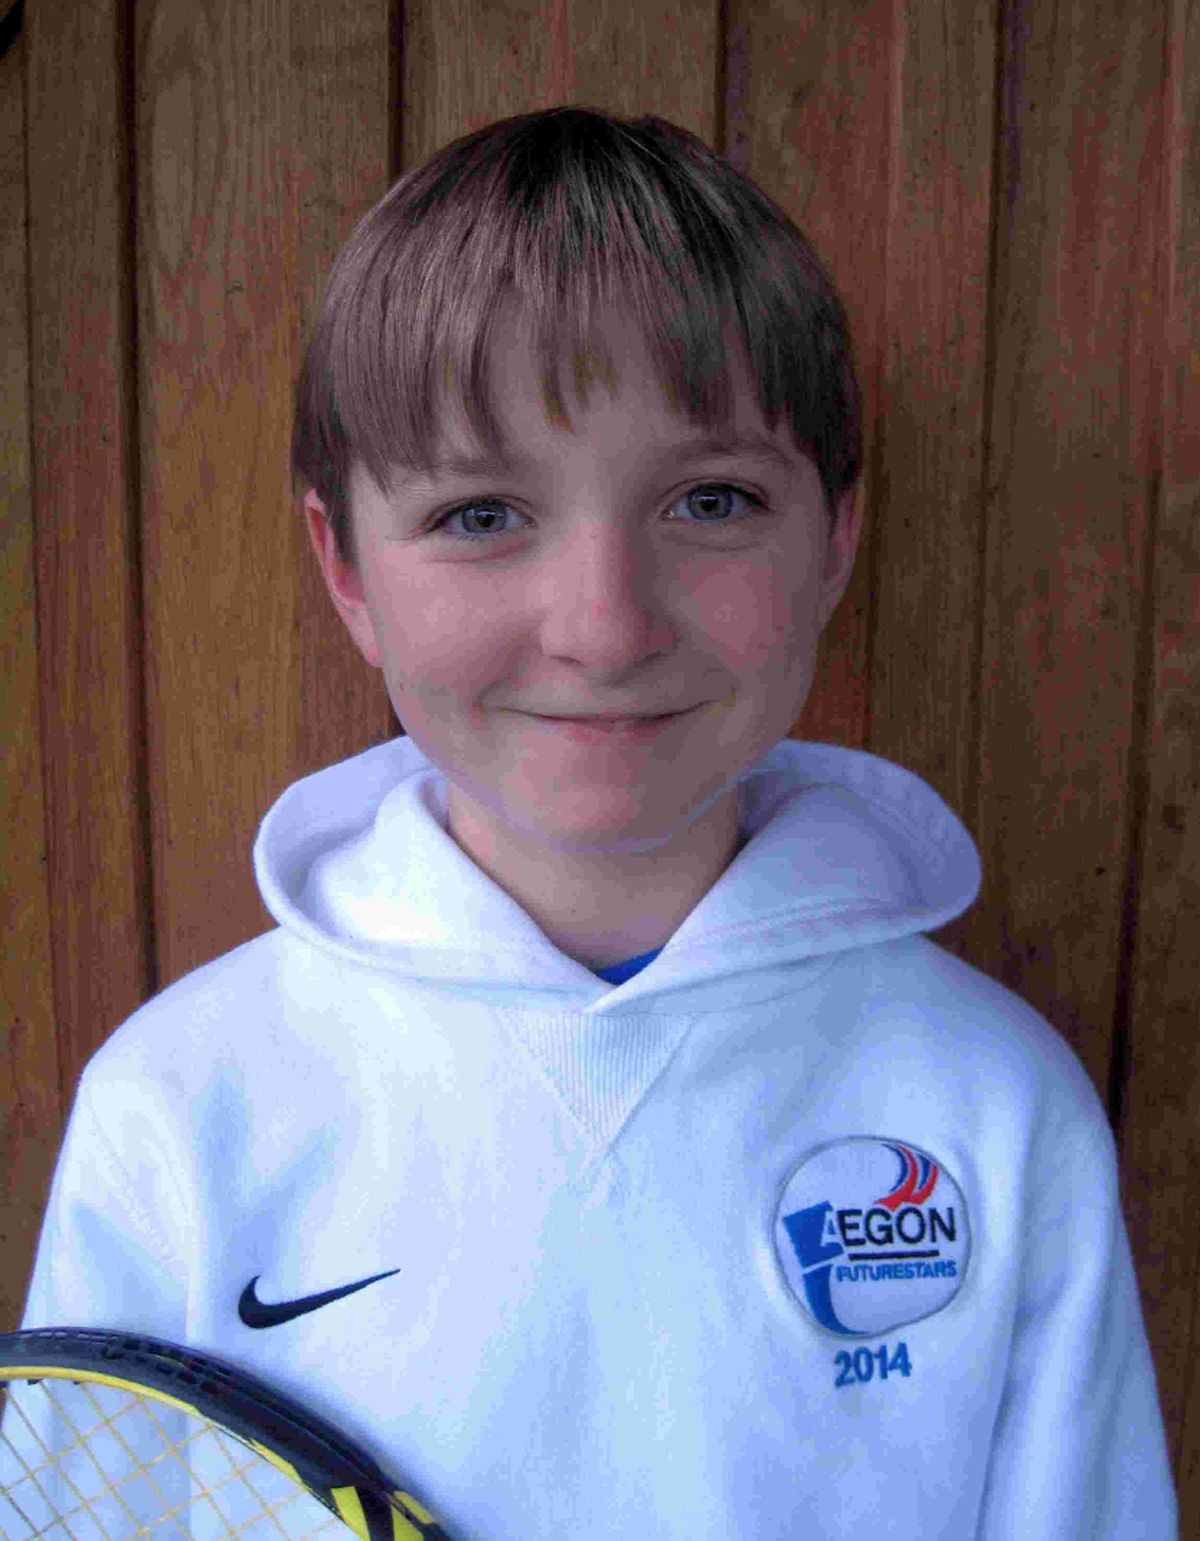 UP AND COMING: Alex Knox-Jones is part of the Aegon FutureStars programme